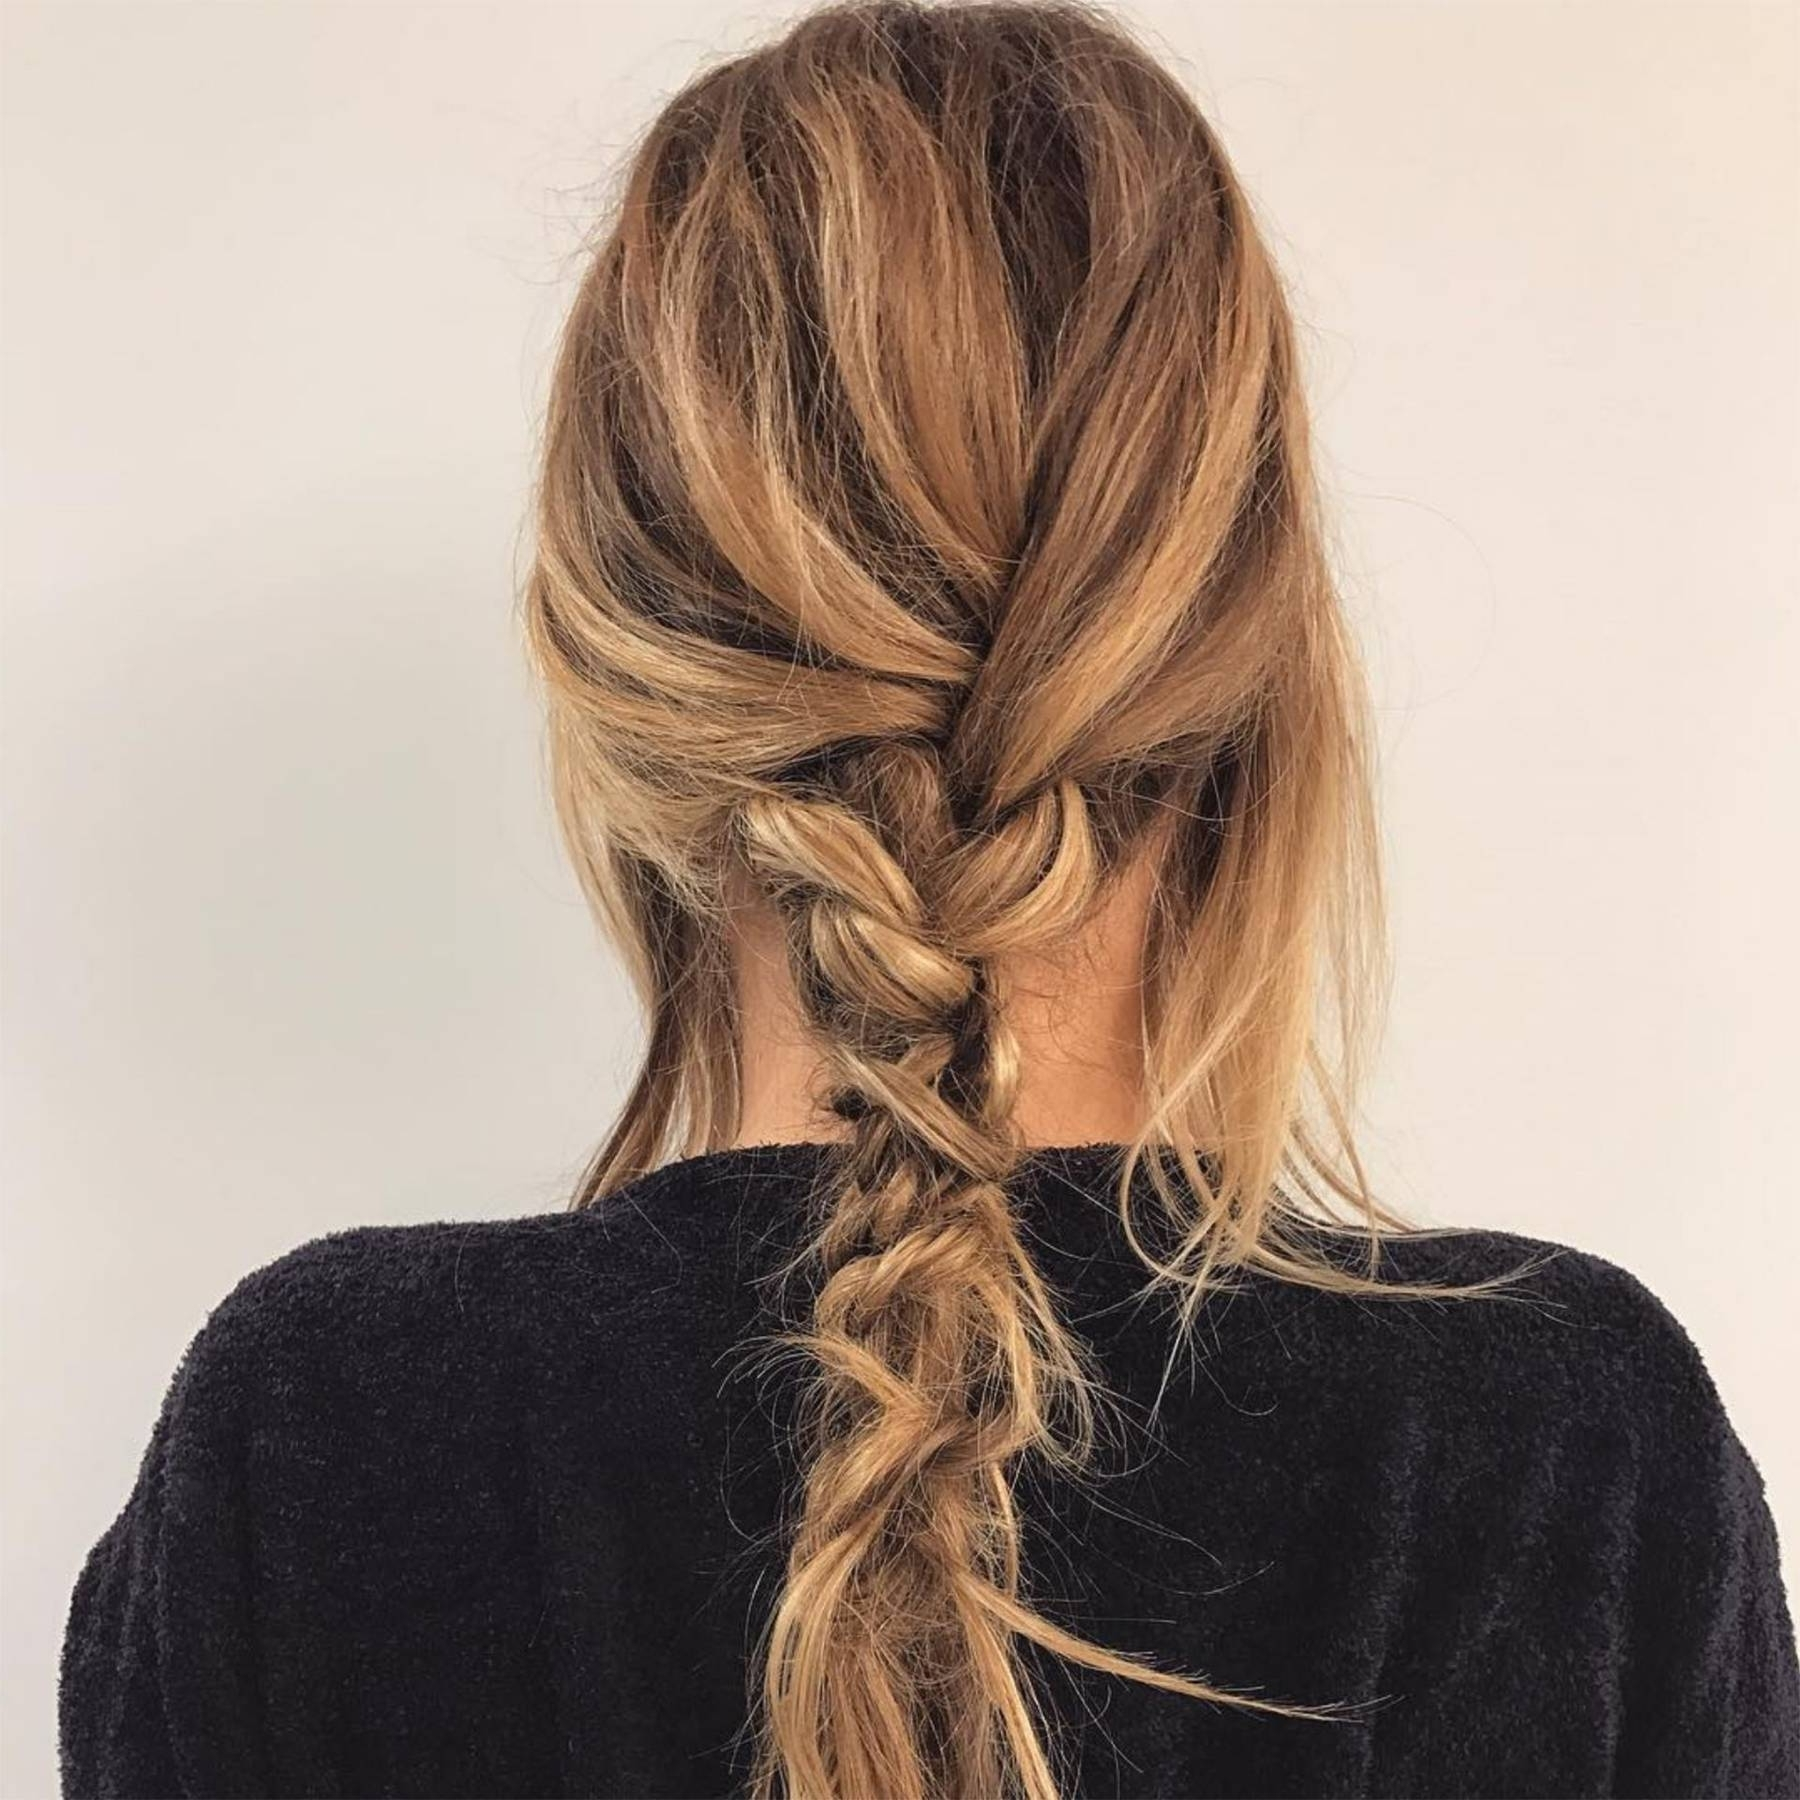 Ponytail Hairstyles 2018: Hair Up Ideas (View 13 of 20)